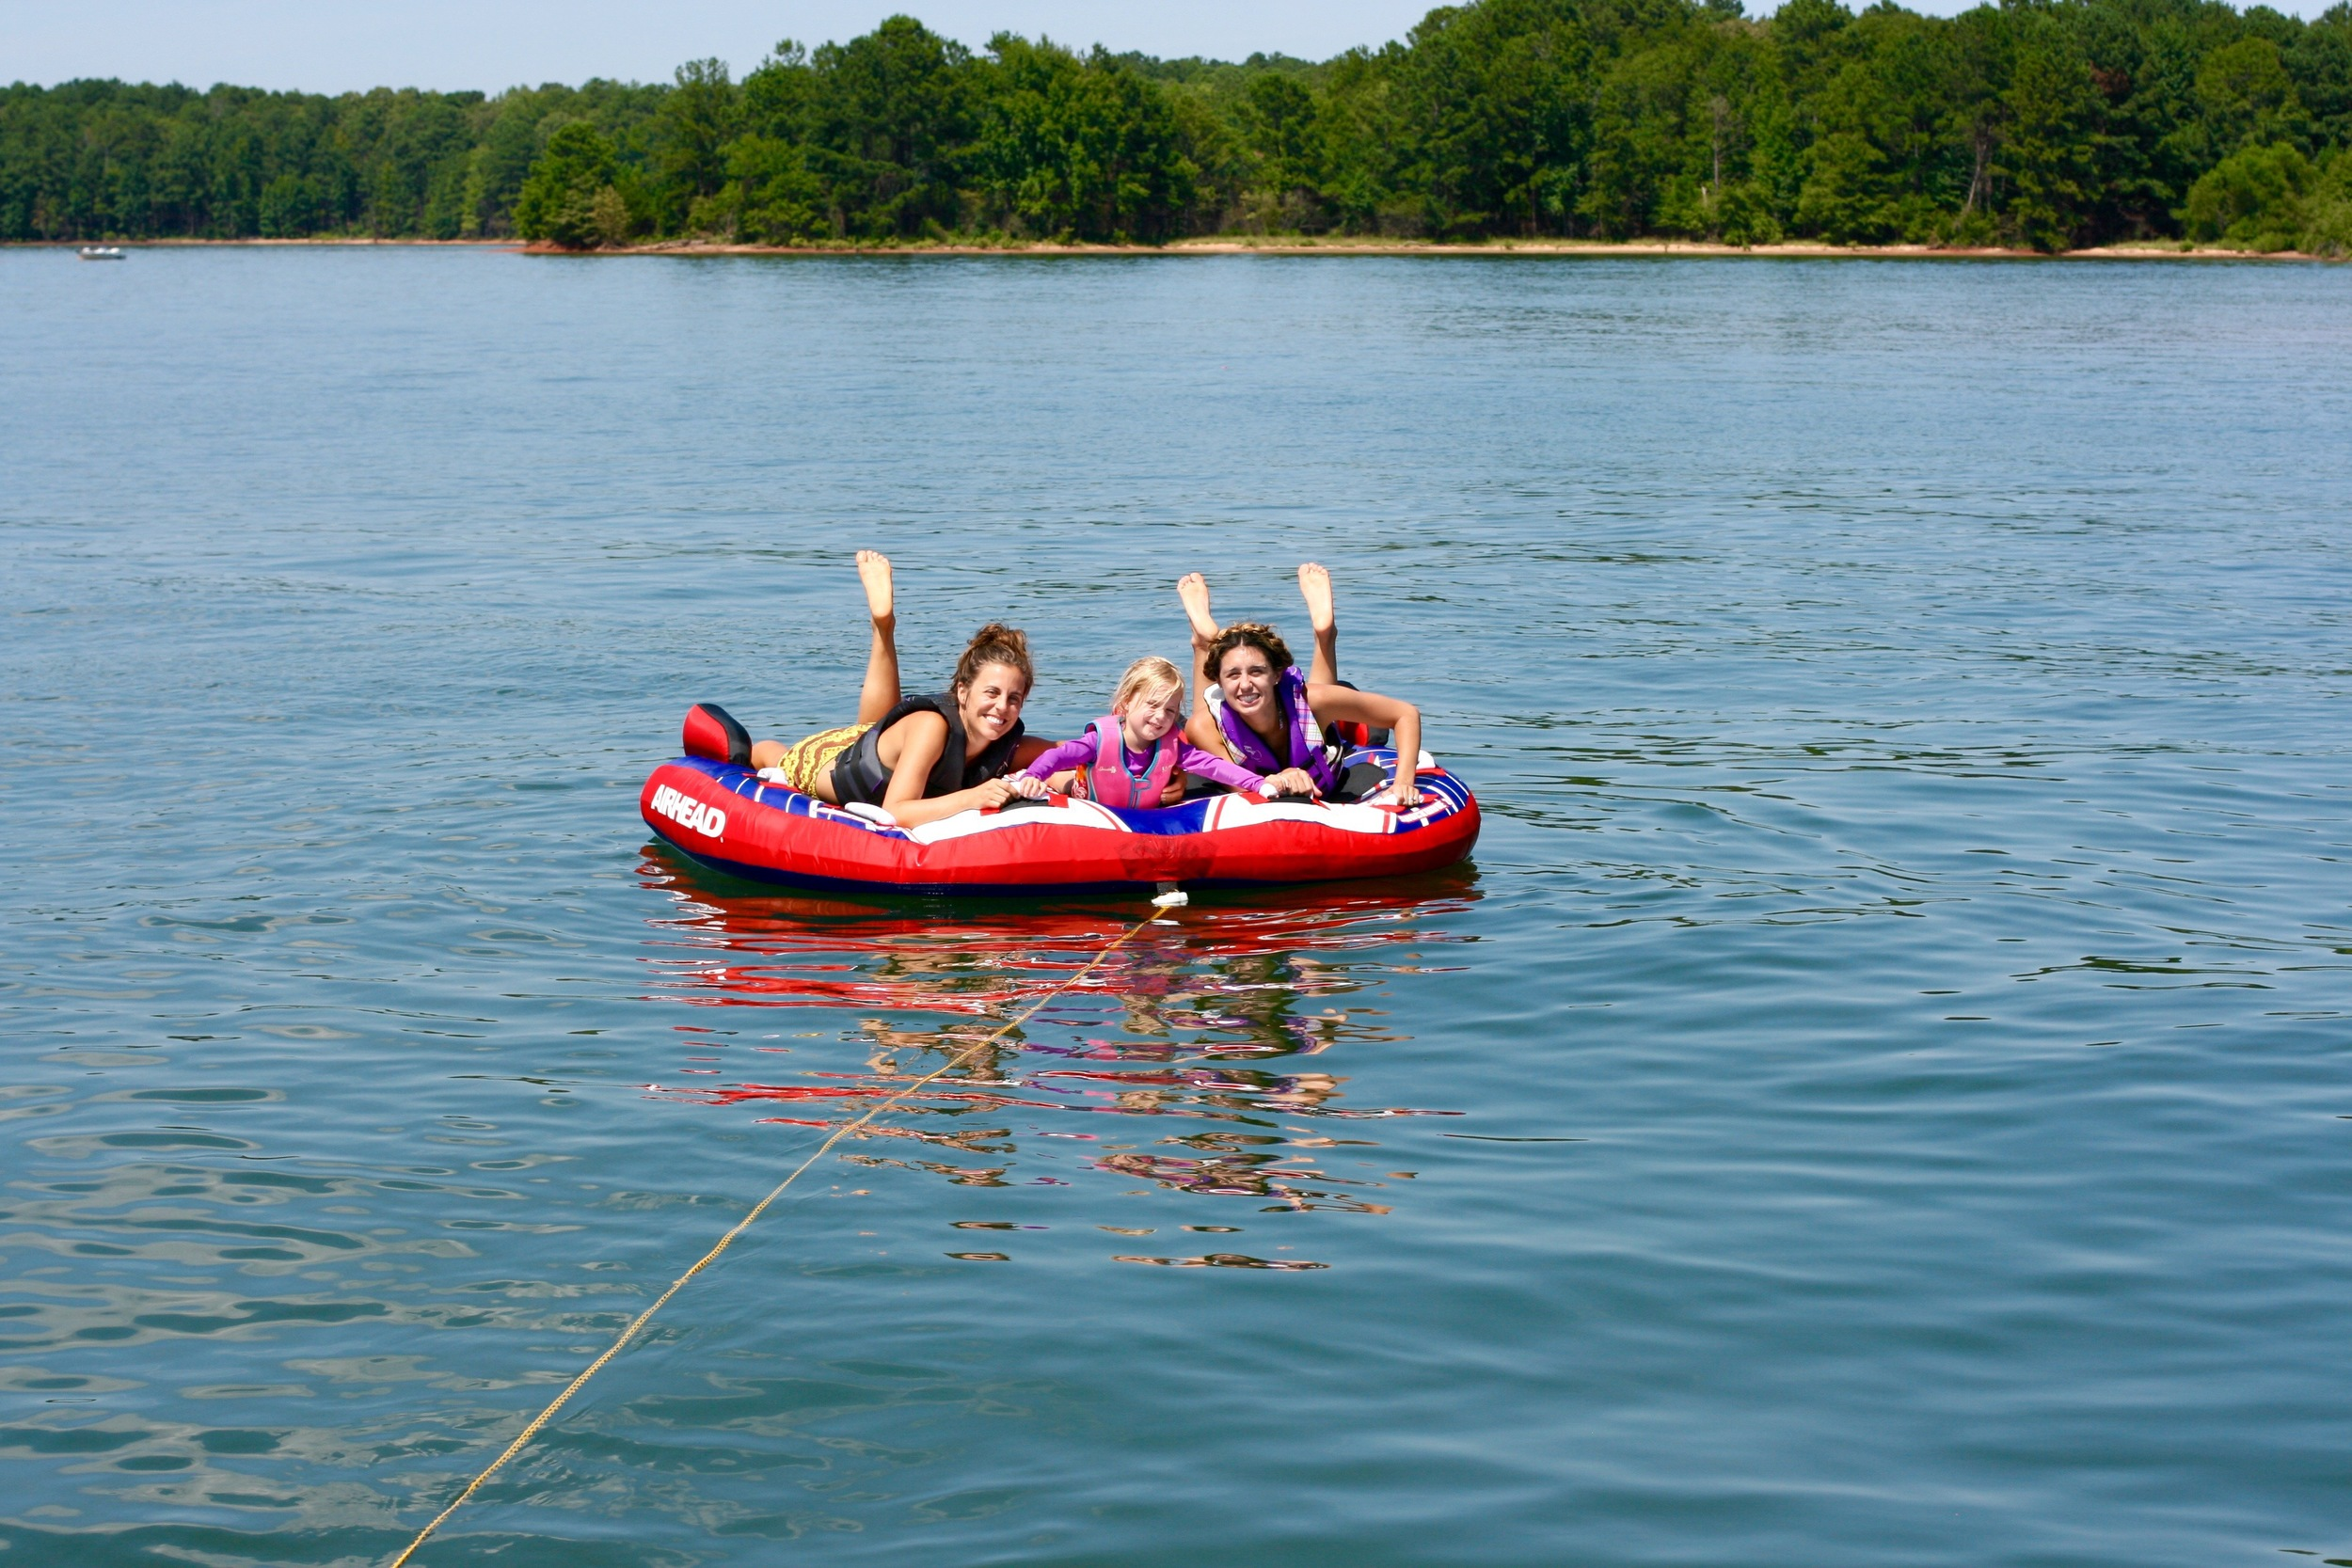 Playing on the water with my bff sis-in-law and my sweetheart niece. Girl time is the best time.